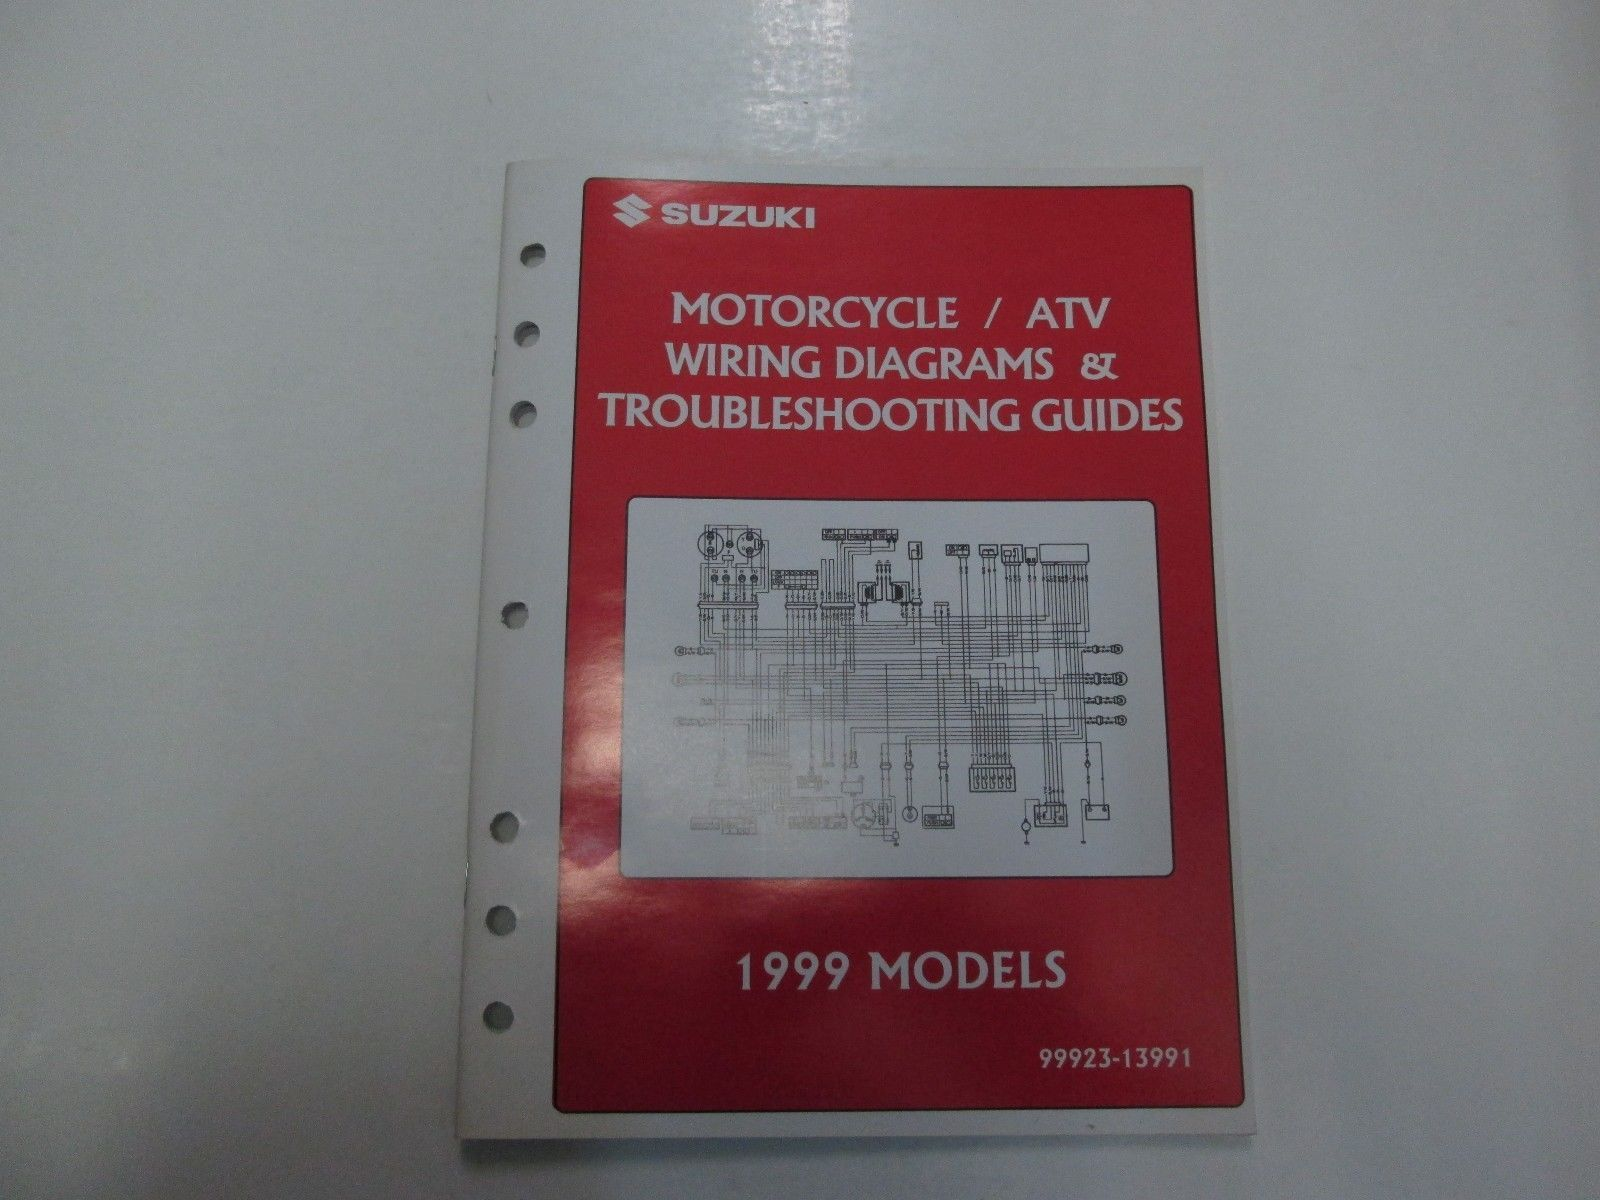 1999 Suzuki Motorcycle & ATV Wiring Diagrams and 50 similar items on